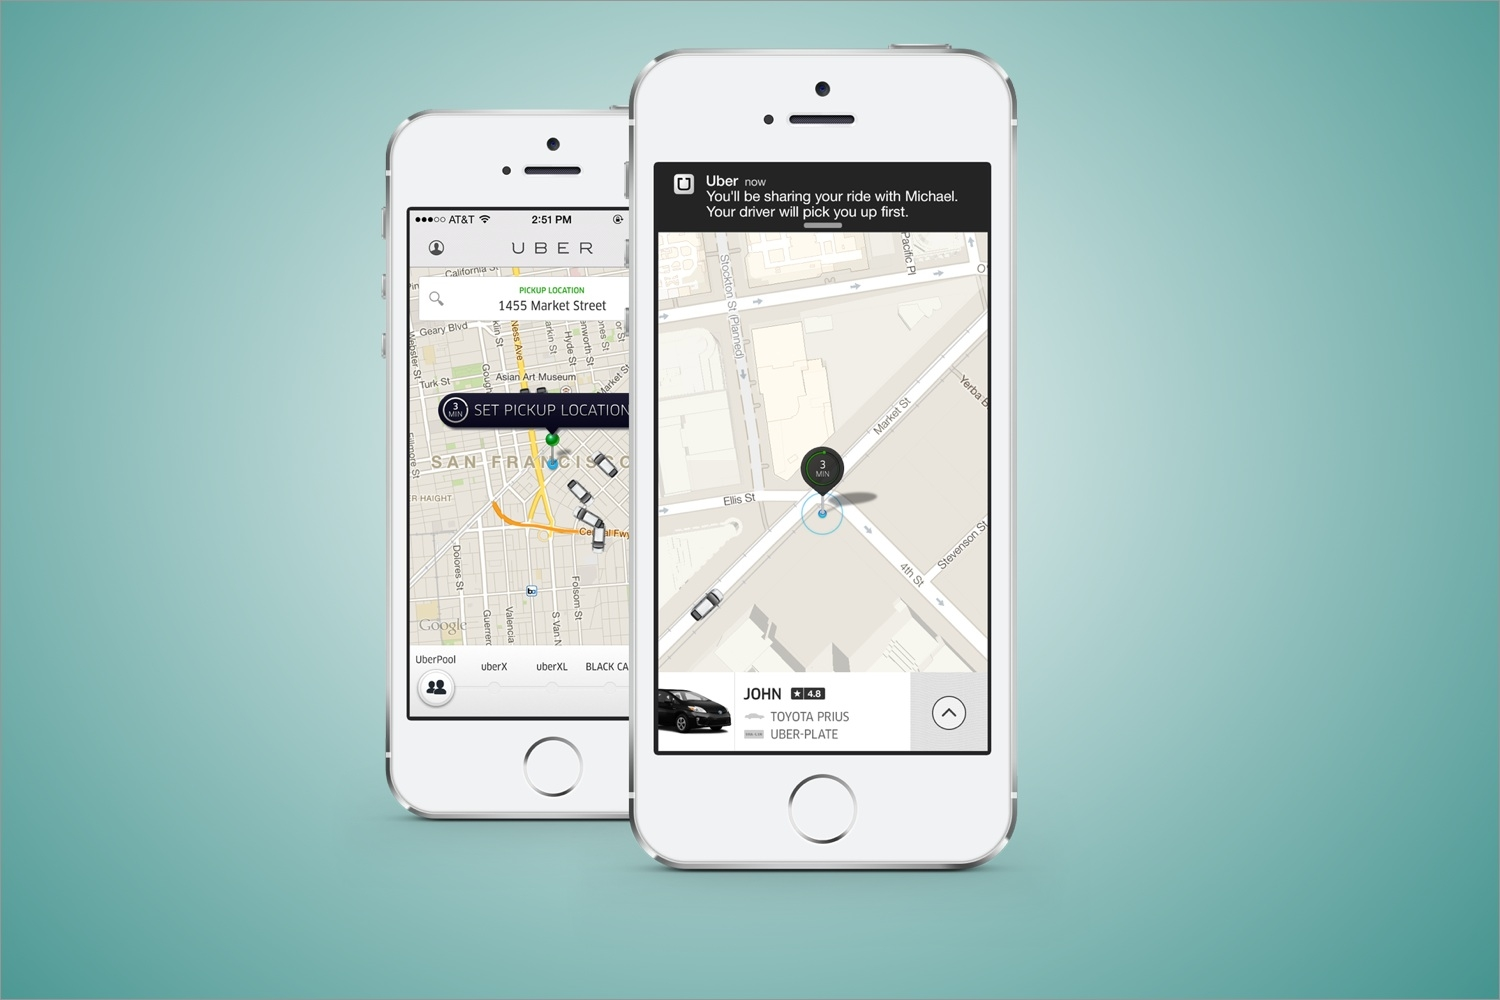 Uber Now Let's You Share Your Ride (And Taxi Fare) With A Stranger